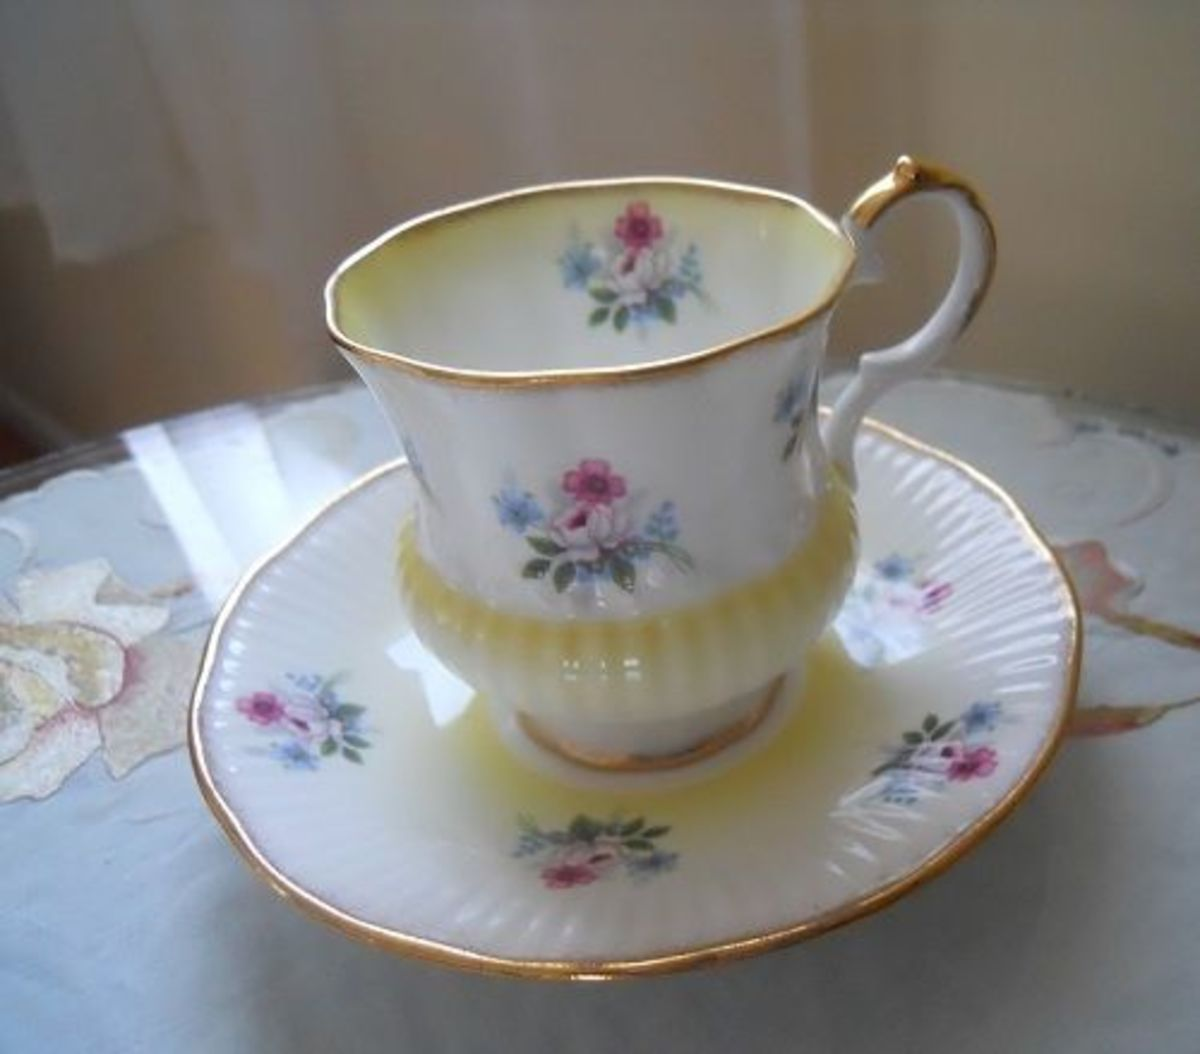 Yellow Floral Teacup by Elizabethan Bone China, Ltd.